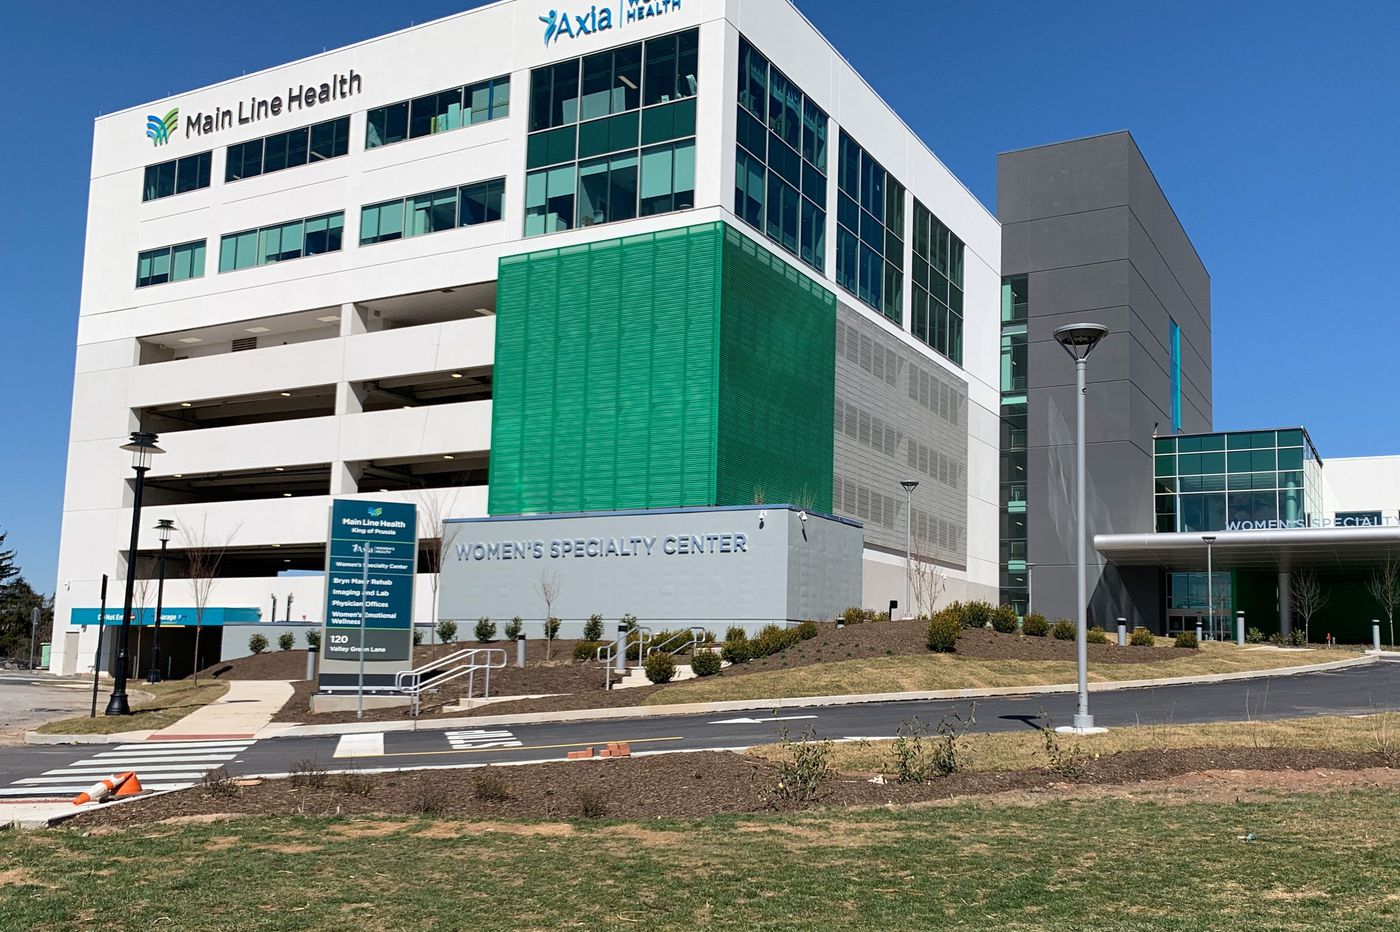 Main Line Health opens 94,000-square-foot outpatient center in King of Prussia